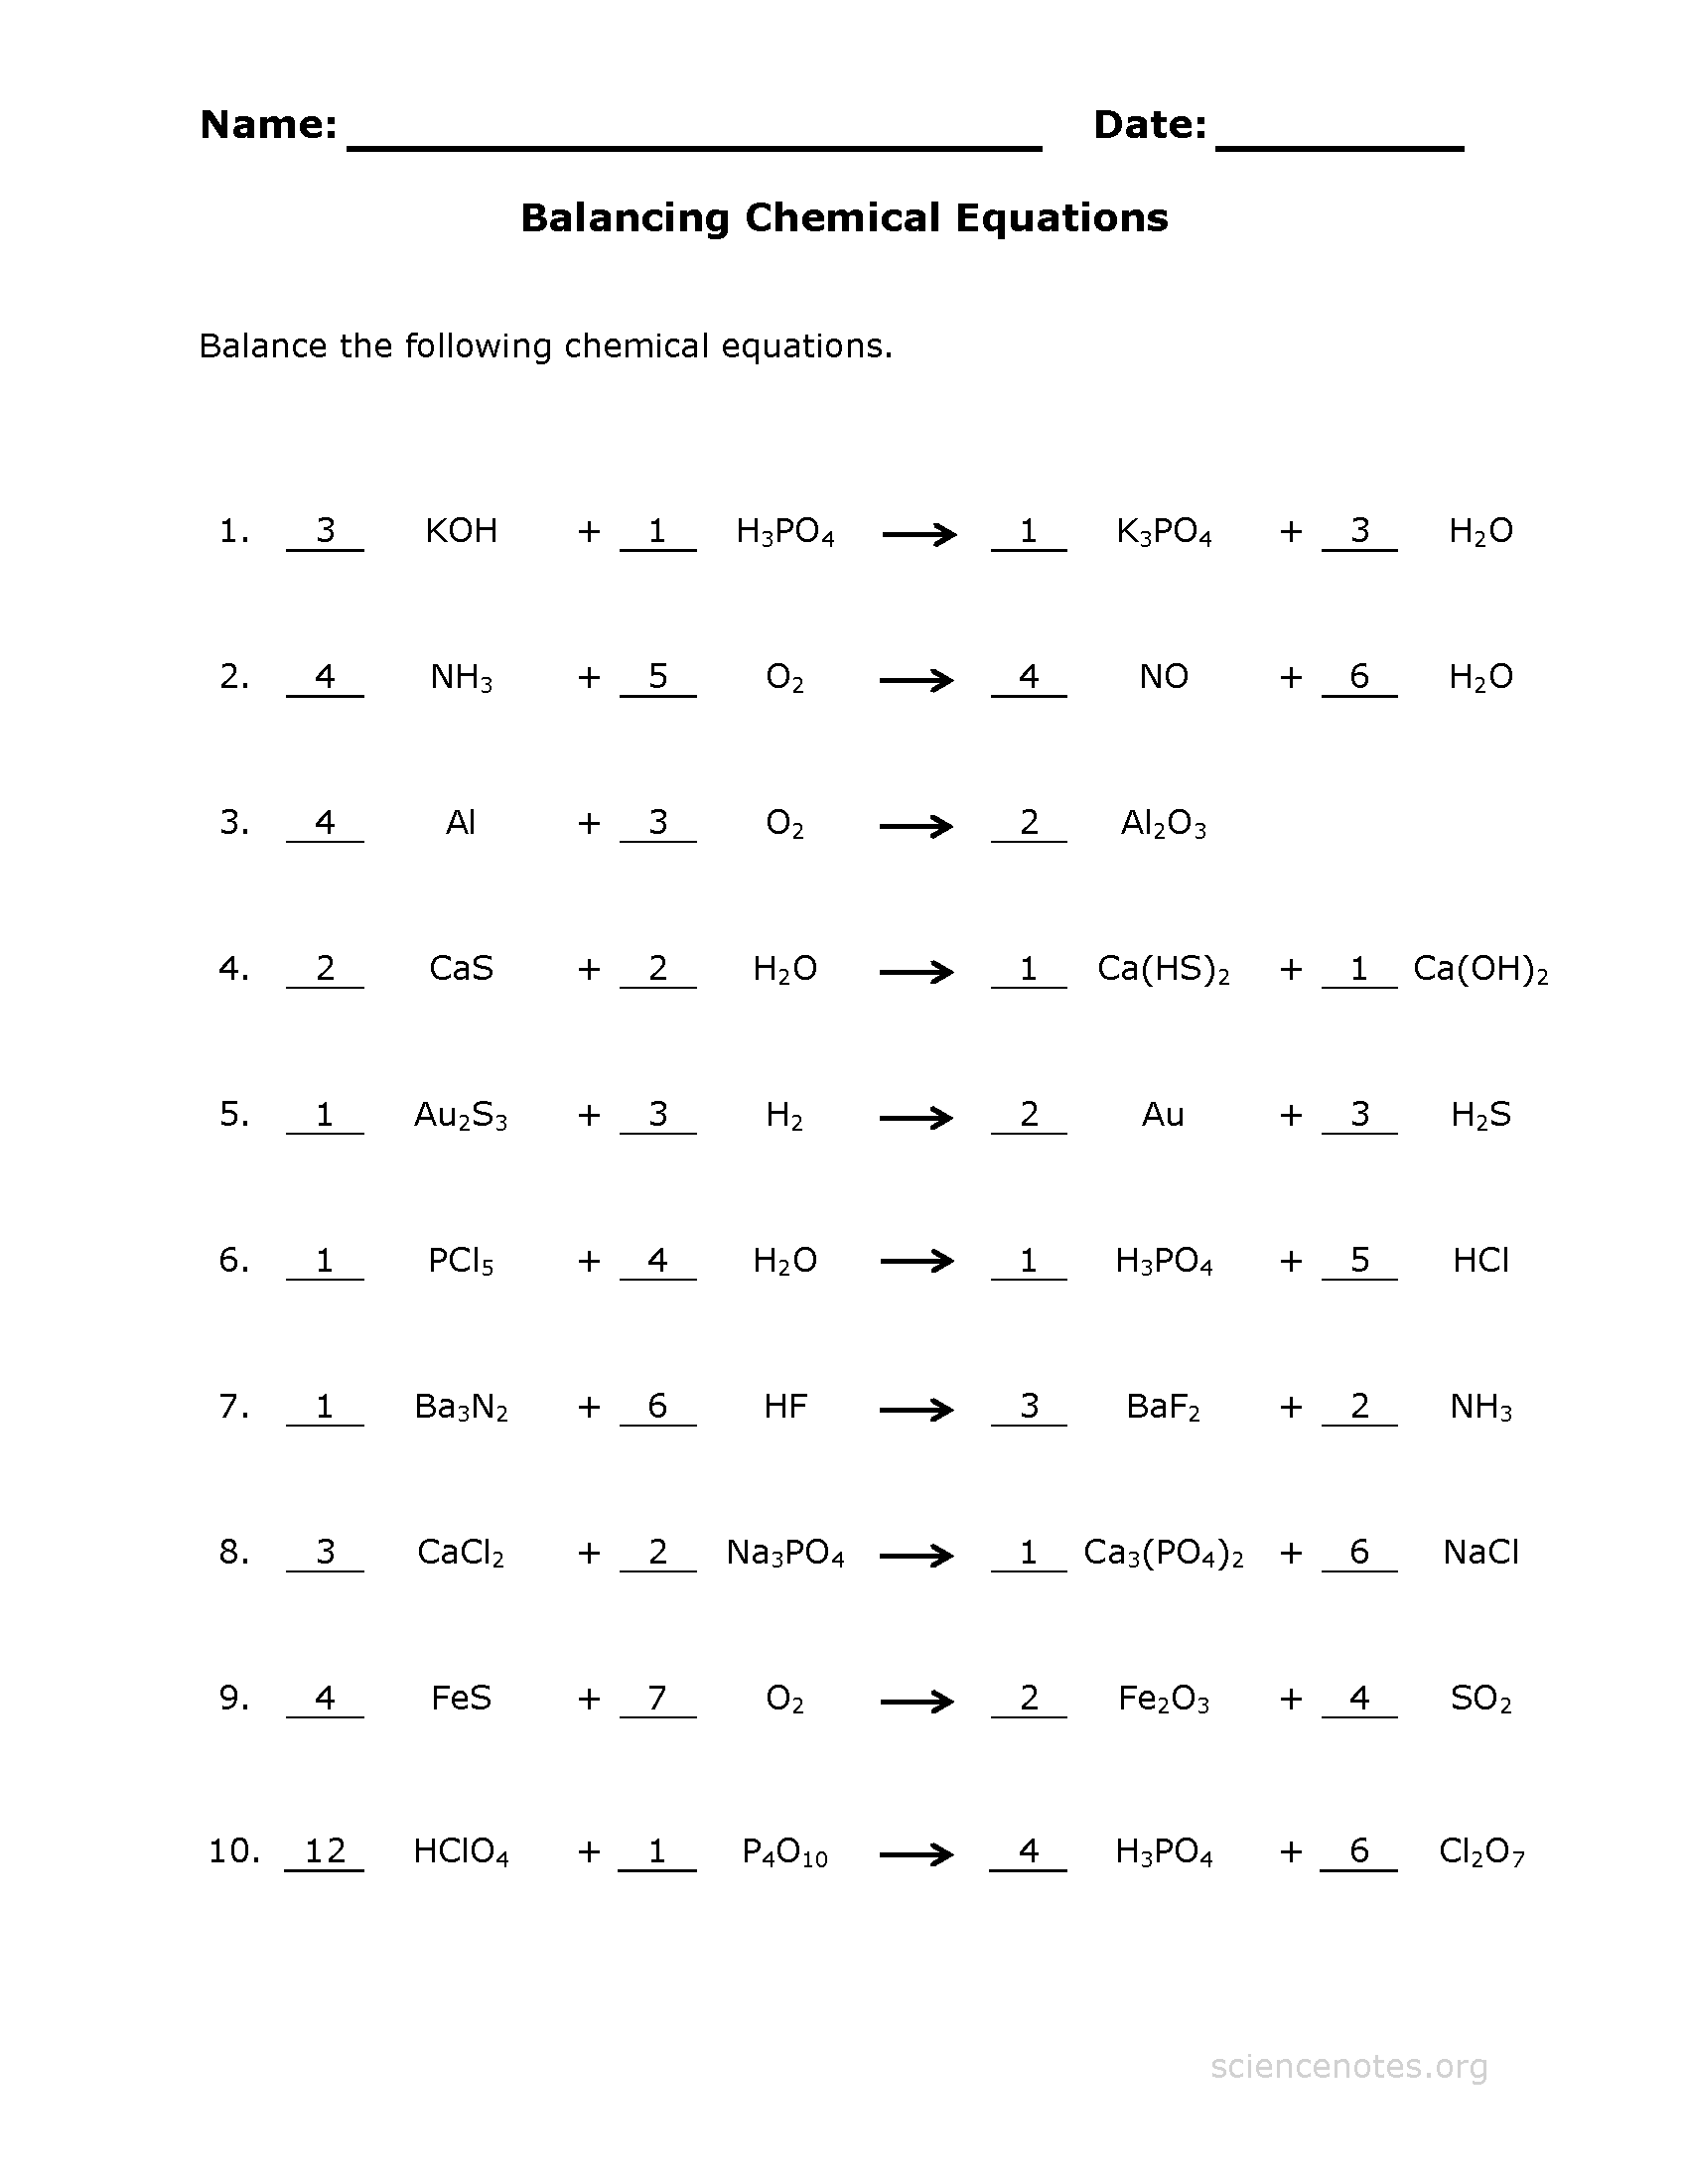 Balancing Chemical Equations Practice Sheet – Balancing Chemical Equations Worksheet 1 Answers